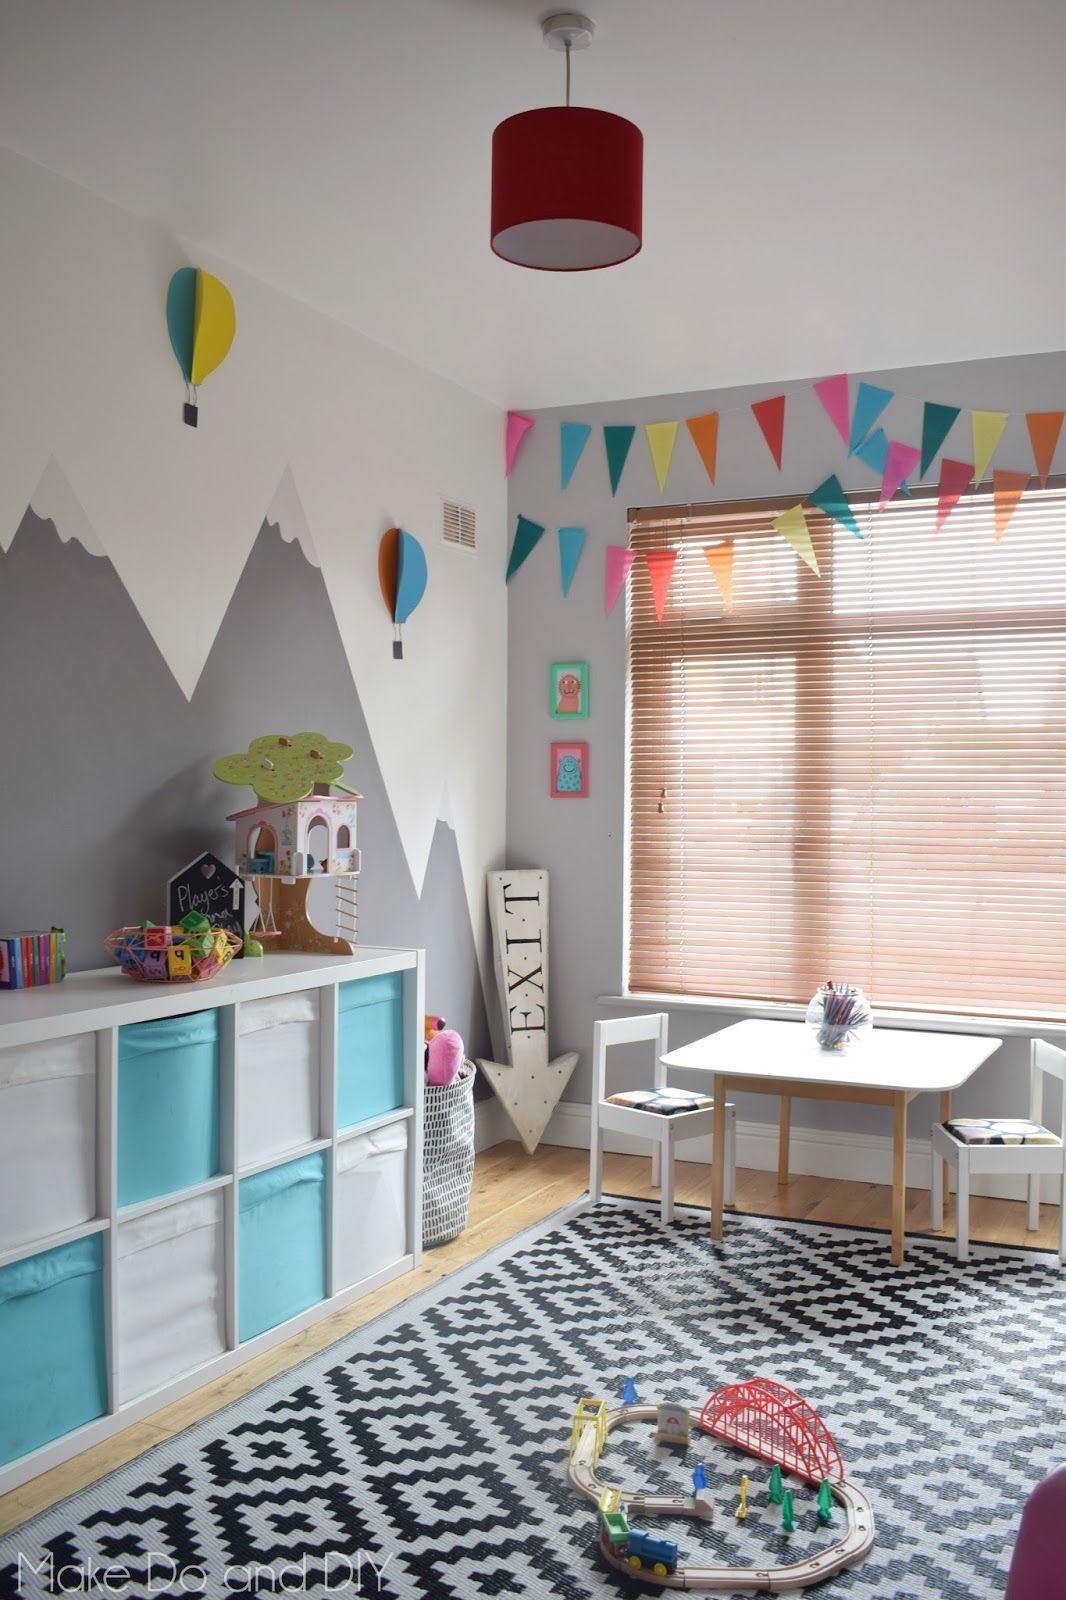 Best ideas about DIY Kids Playroom . Save or Pin adventure playroom makeover diy Now.